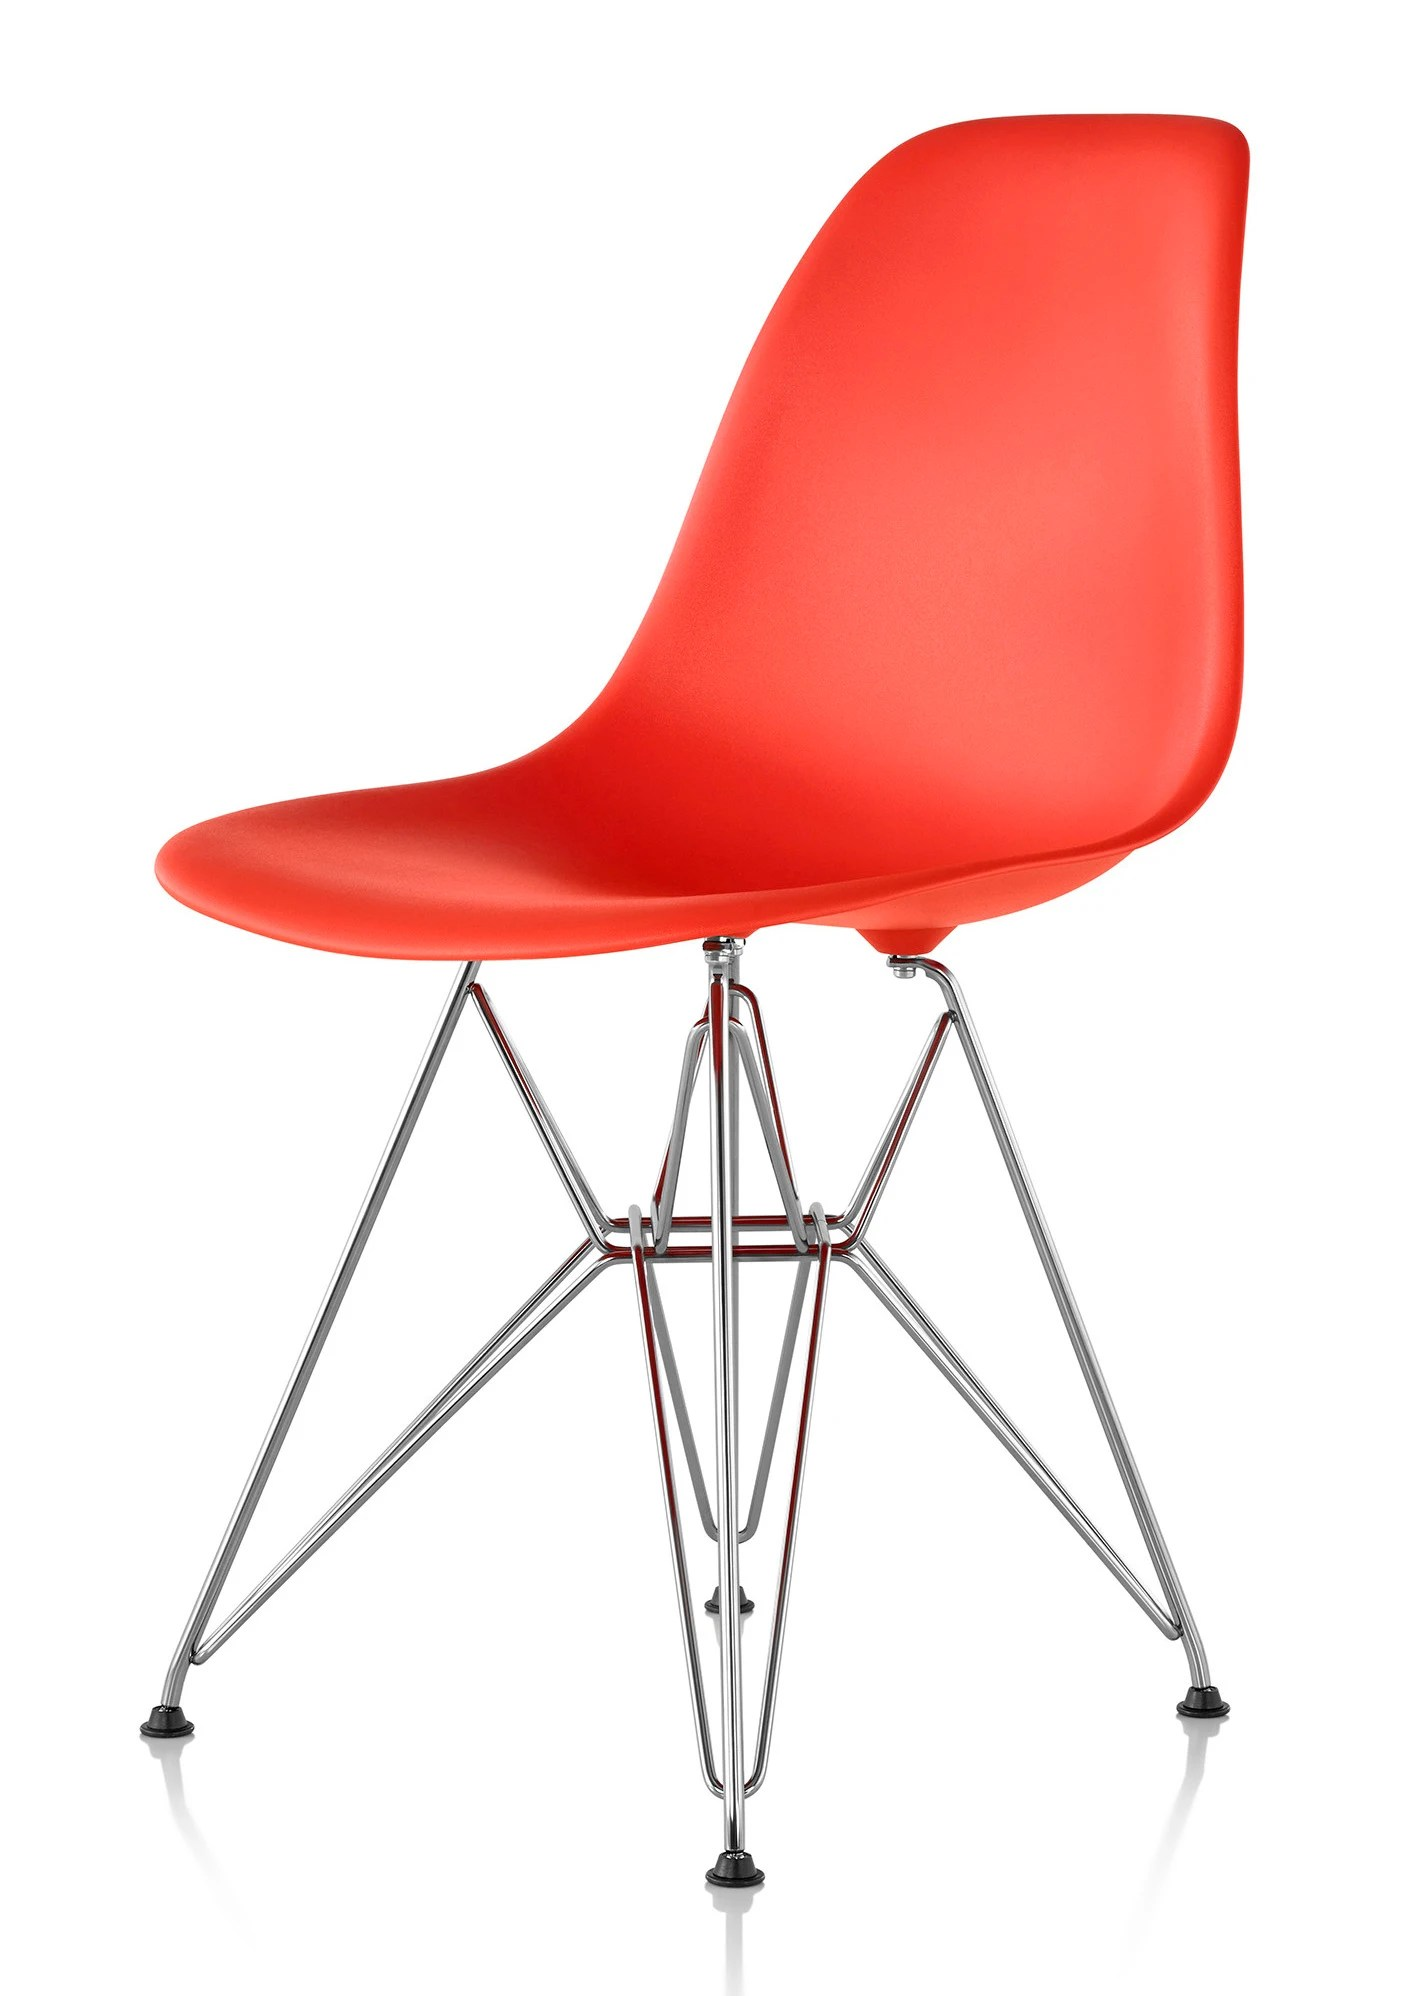 plastic molded chairs how to refinish wood herman miller eames side chair gr shop